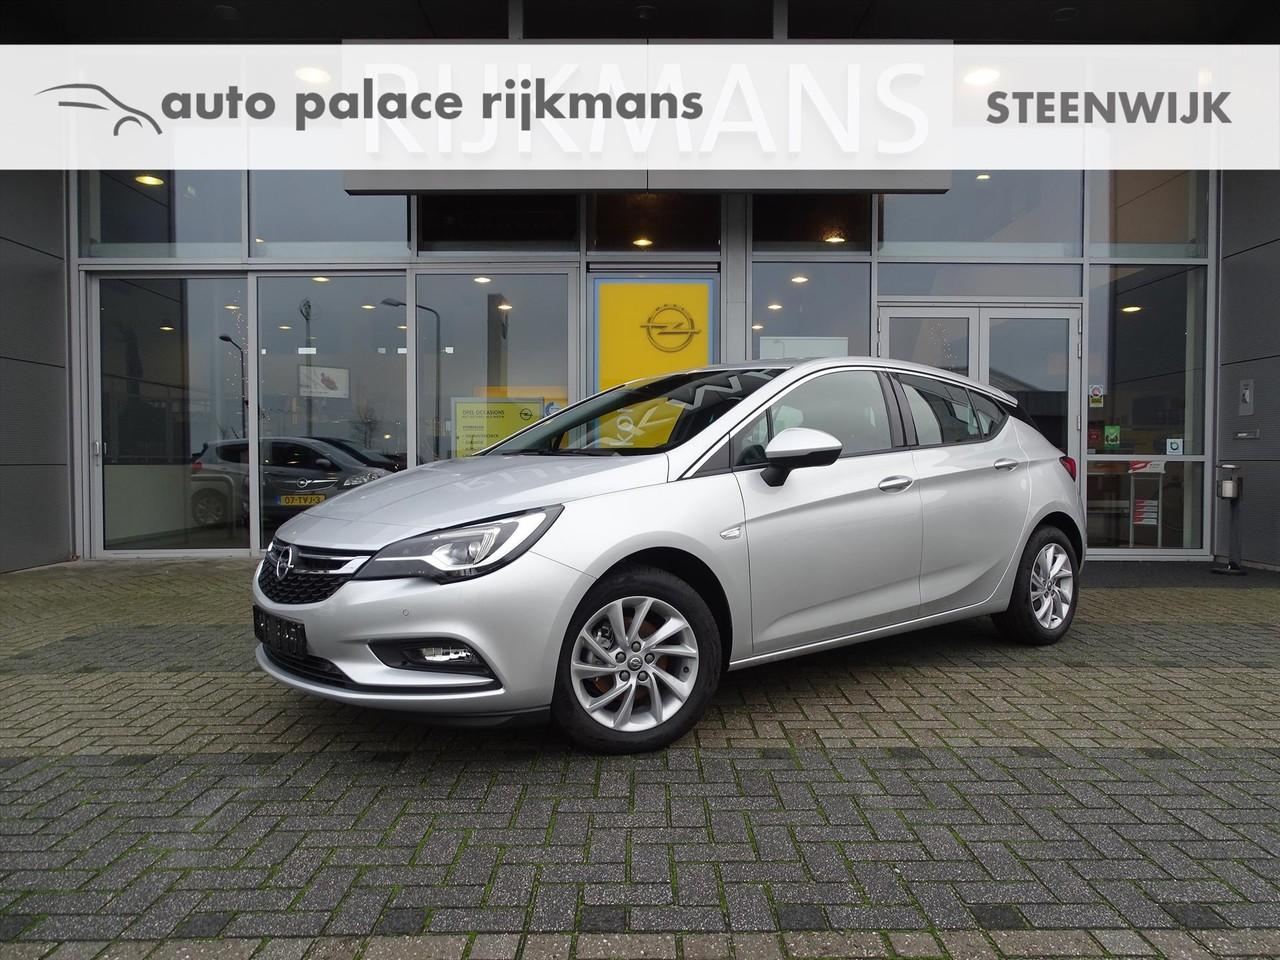 Opel Astra Innovation 1.0t 105 pk - 5drs - navigatie - intellilux led